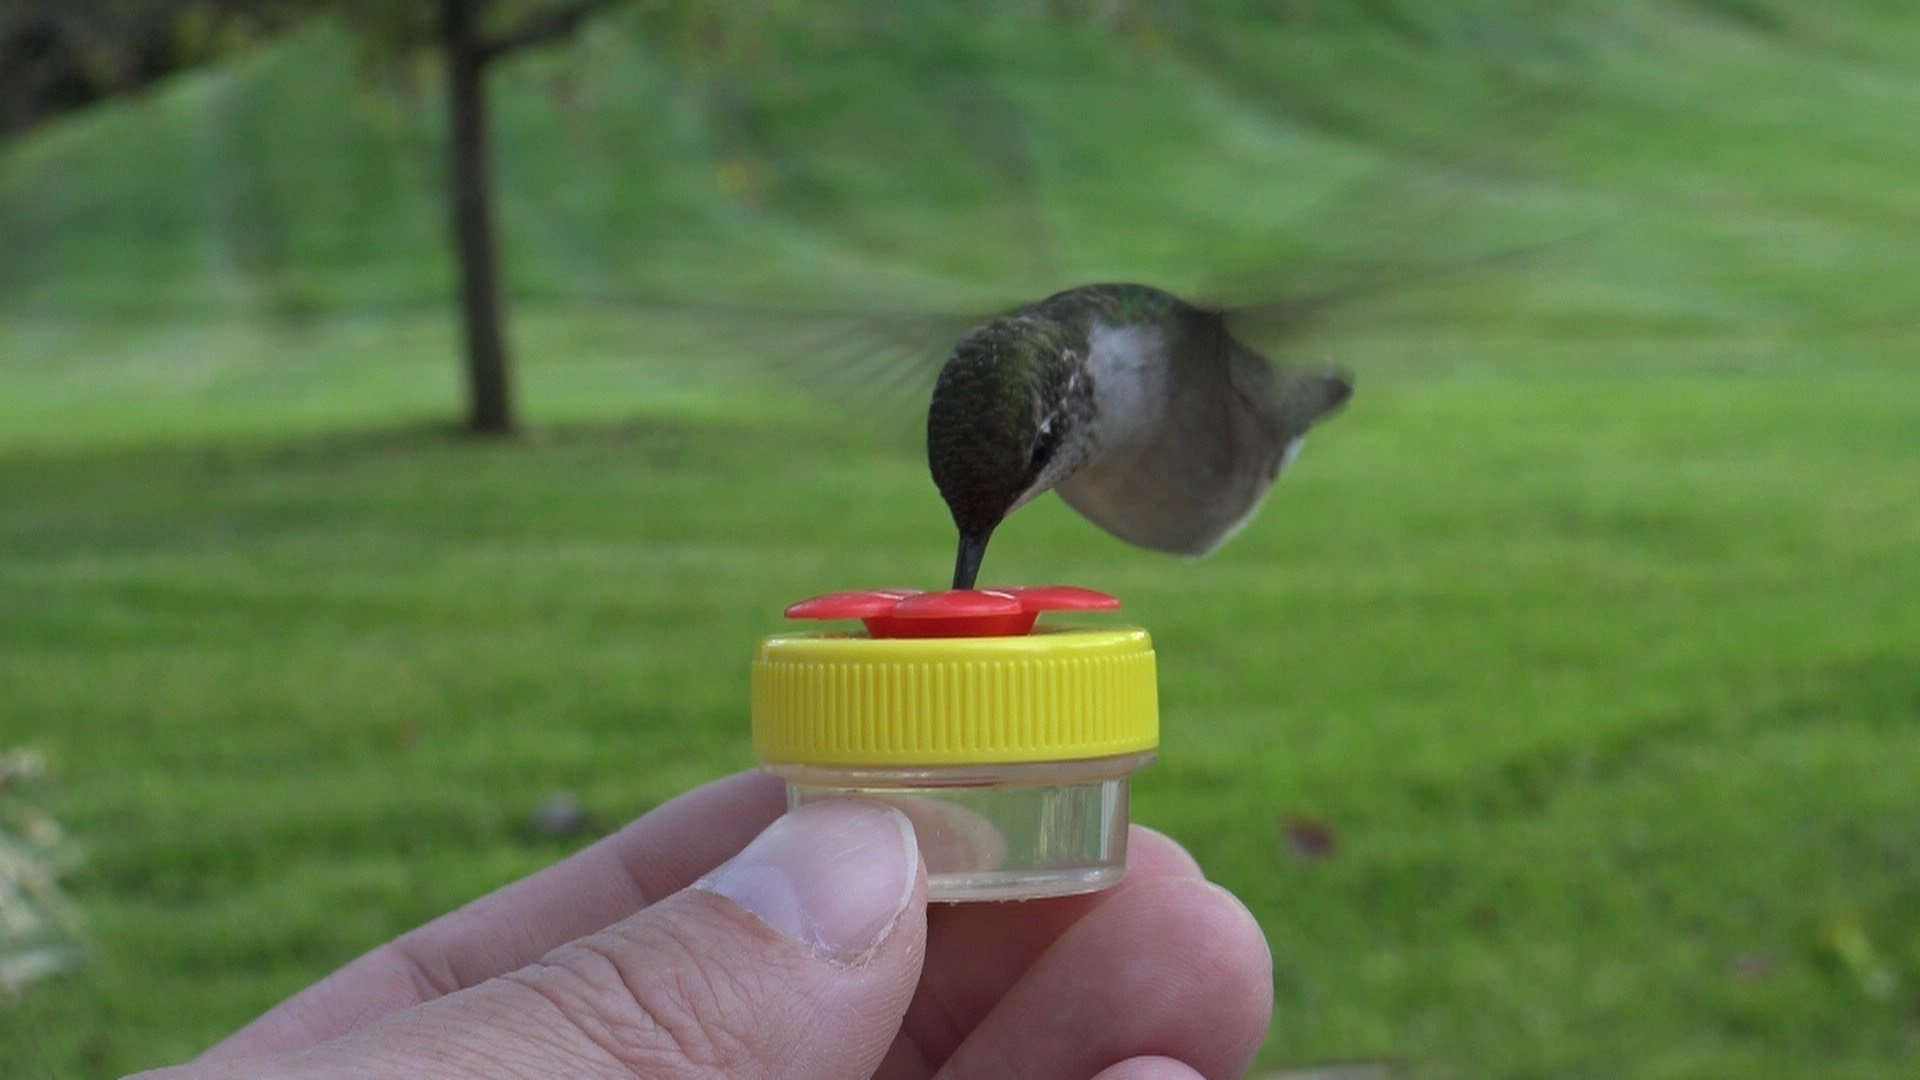 Handheld Hummingbird Feeder Kit- Everything You Need to Hand-Feed Hummingbirds by Nectar DOTS